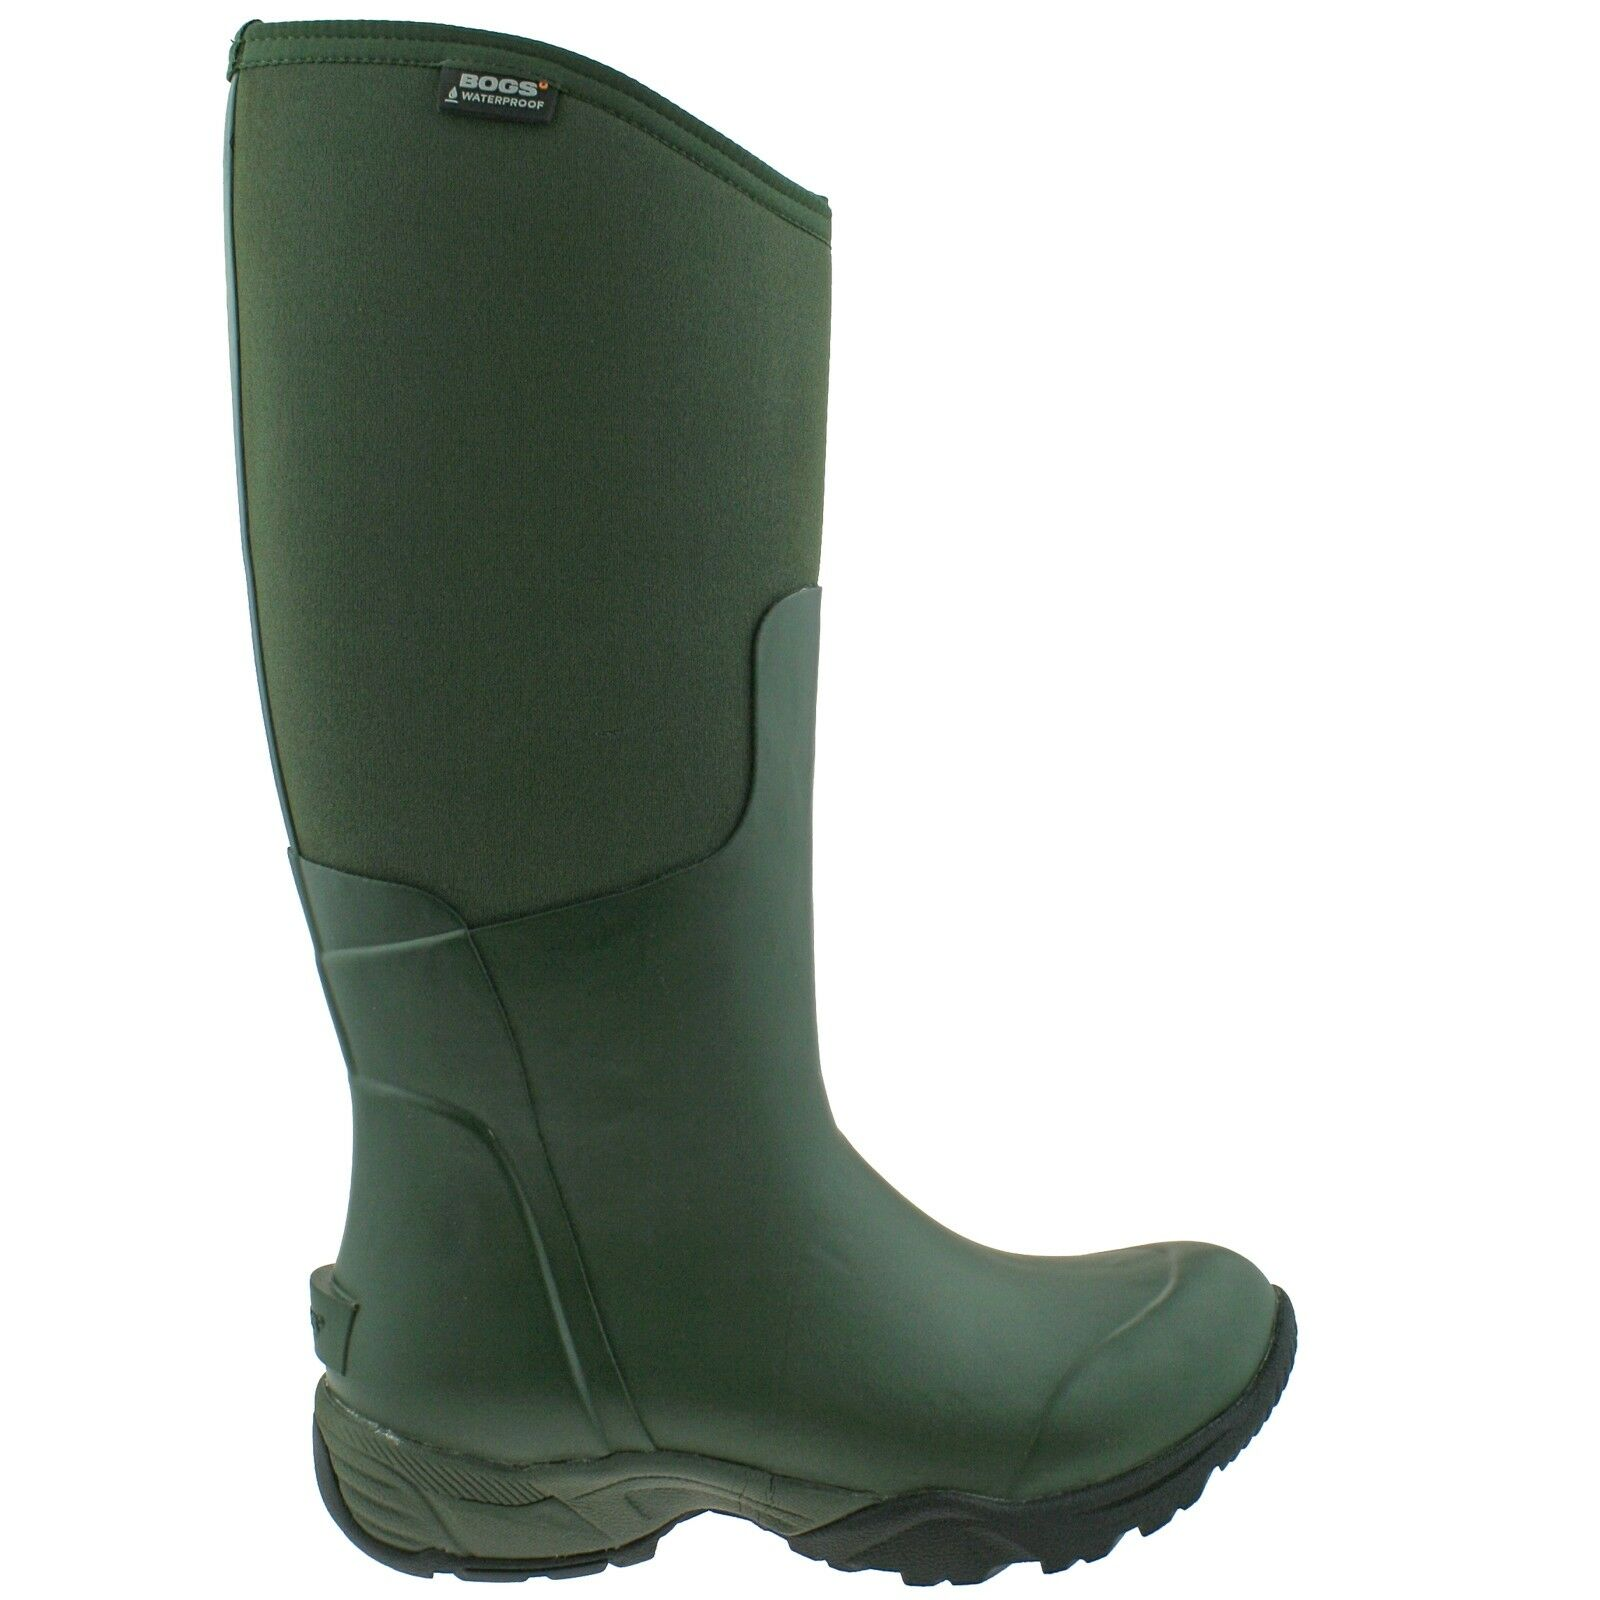 LADIES BOGS ESSENTIAL TALL SOLID OLIVE INSULATED WARM WELLIES Stiefel Stiefel Stiefel 78583 303 8fc011